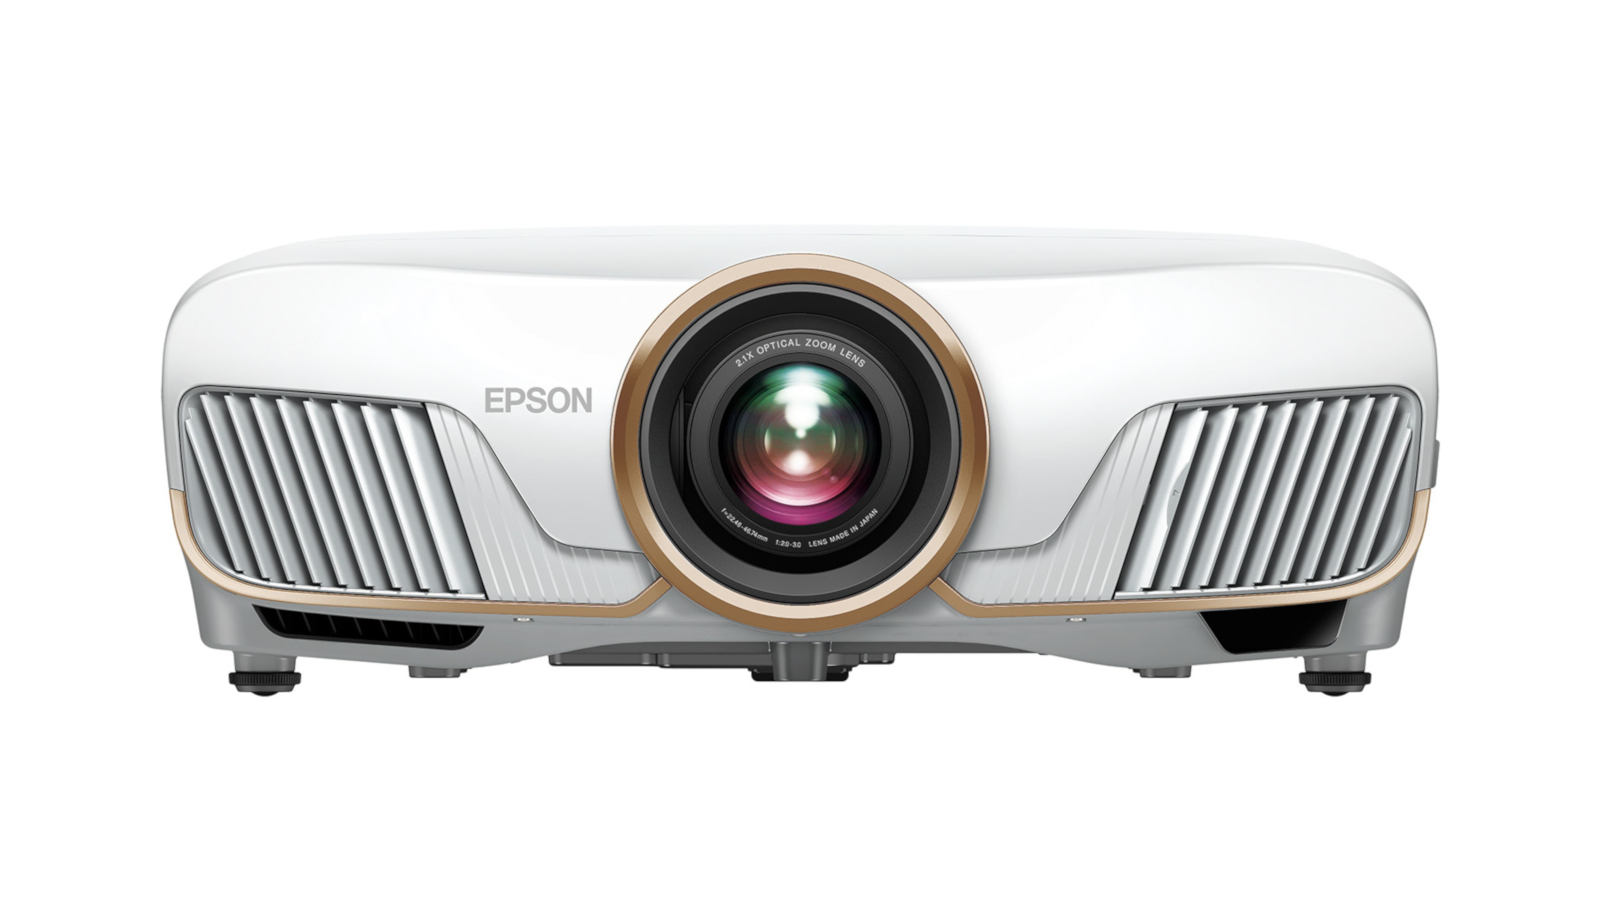 epson-5050ub-and-5050ube-projectors